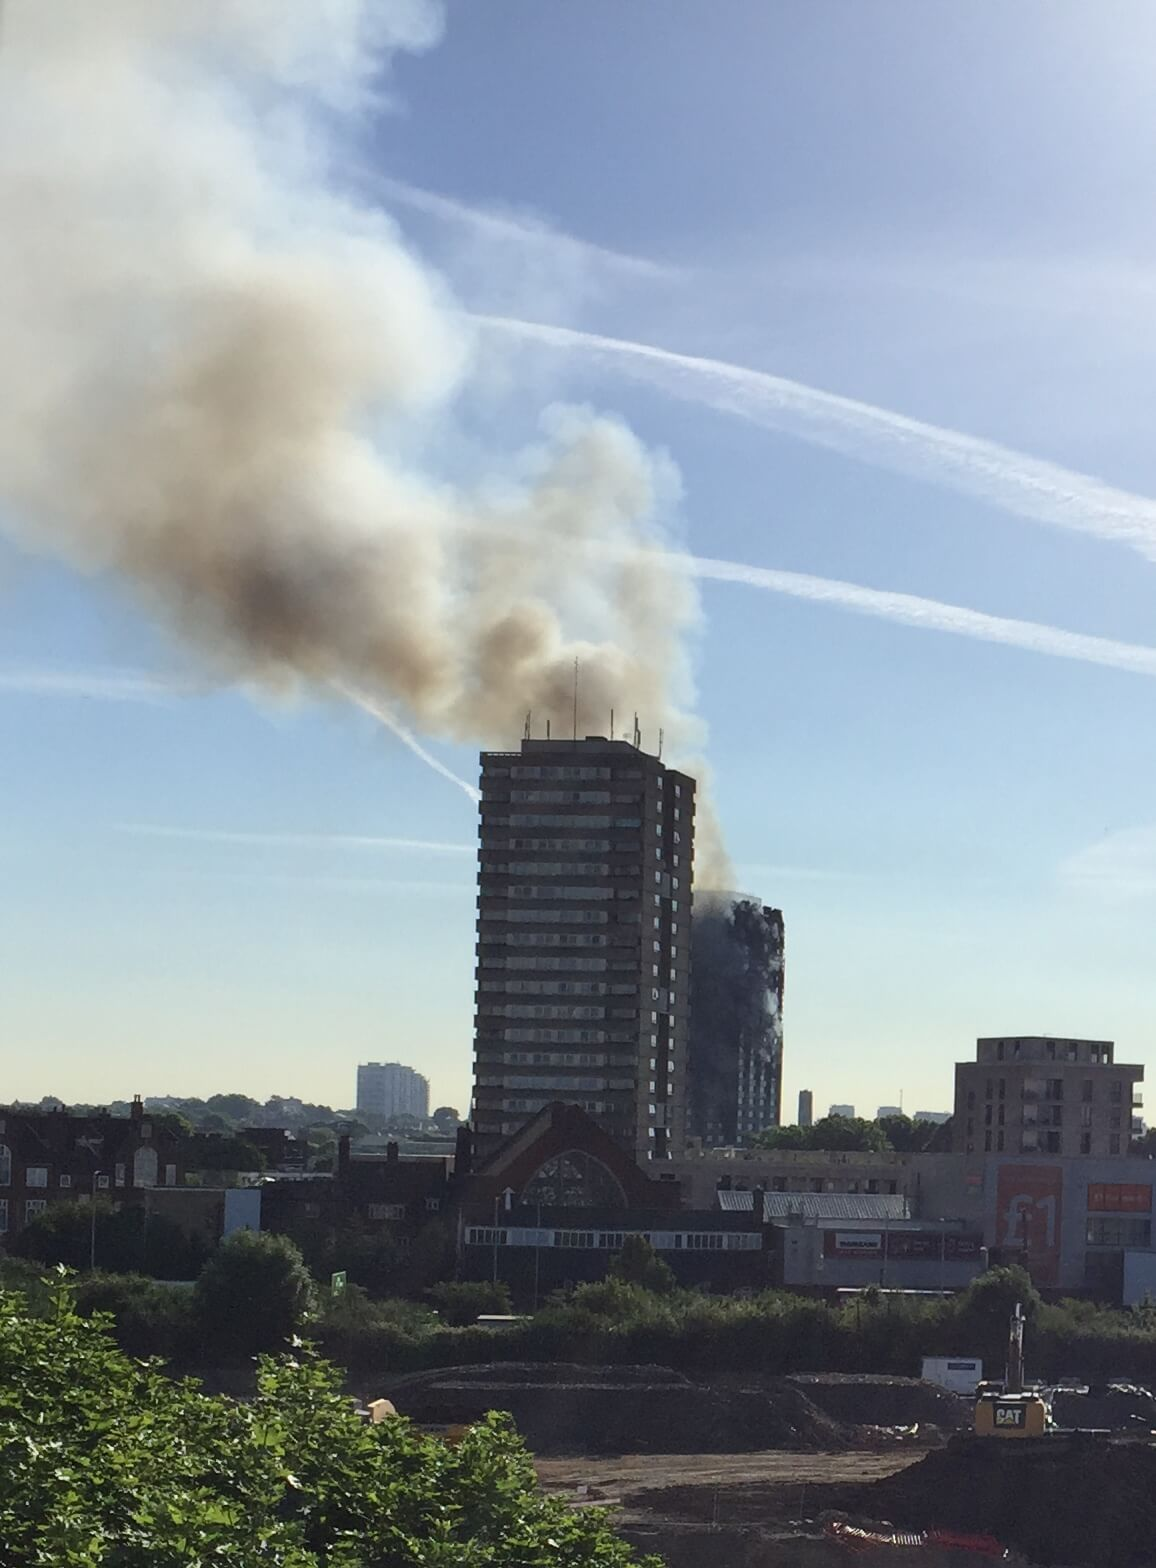 Grenfell Tower Fire: The Avoidable Tragedy